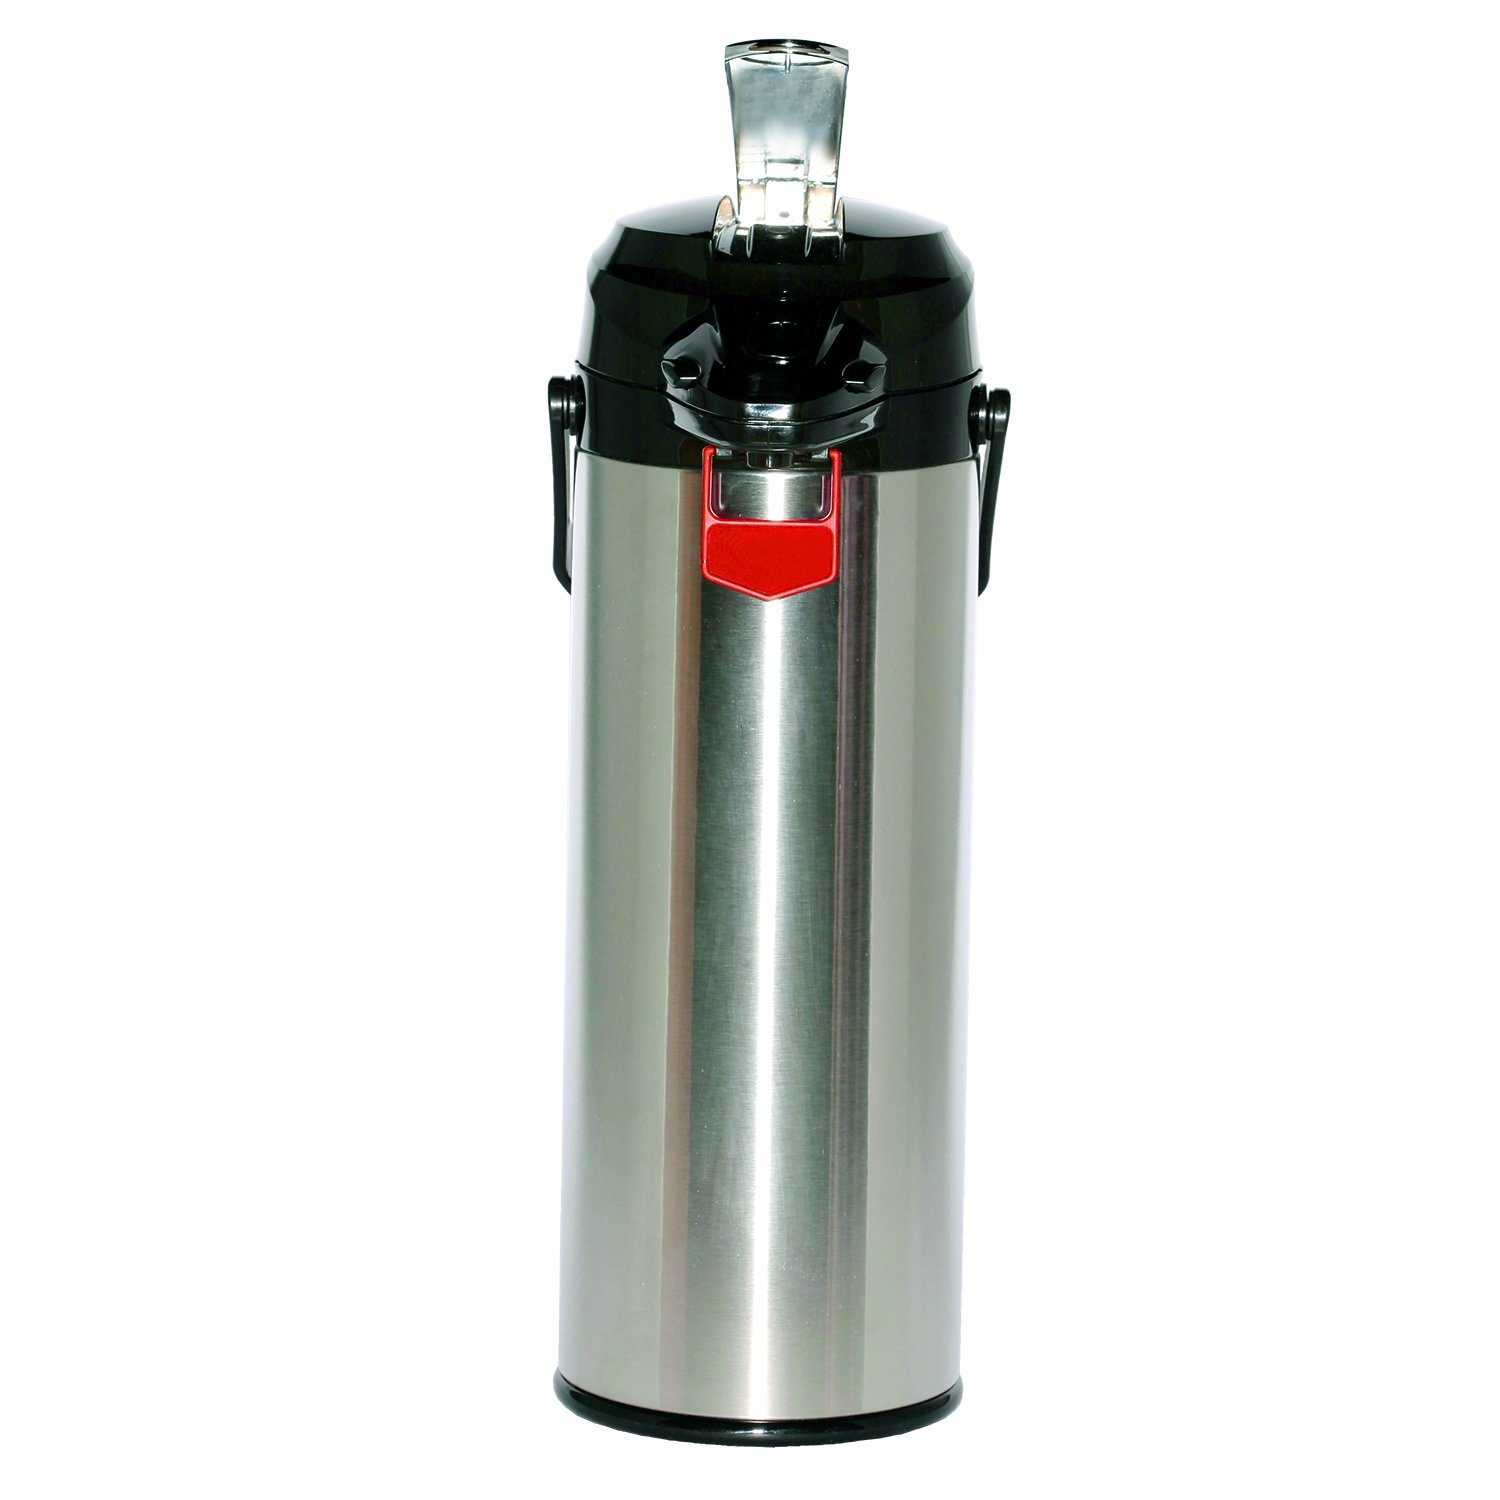 Service Ideas ENALG30S Airpot with Lever, Glass and Stainless Steel, NSF Listed, 3.0 L